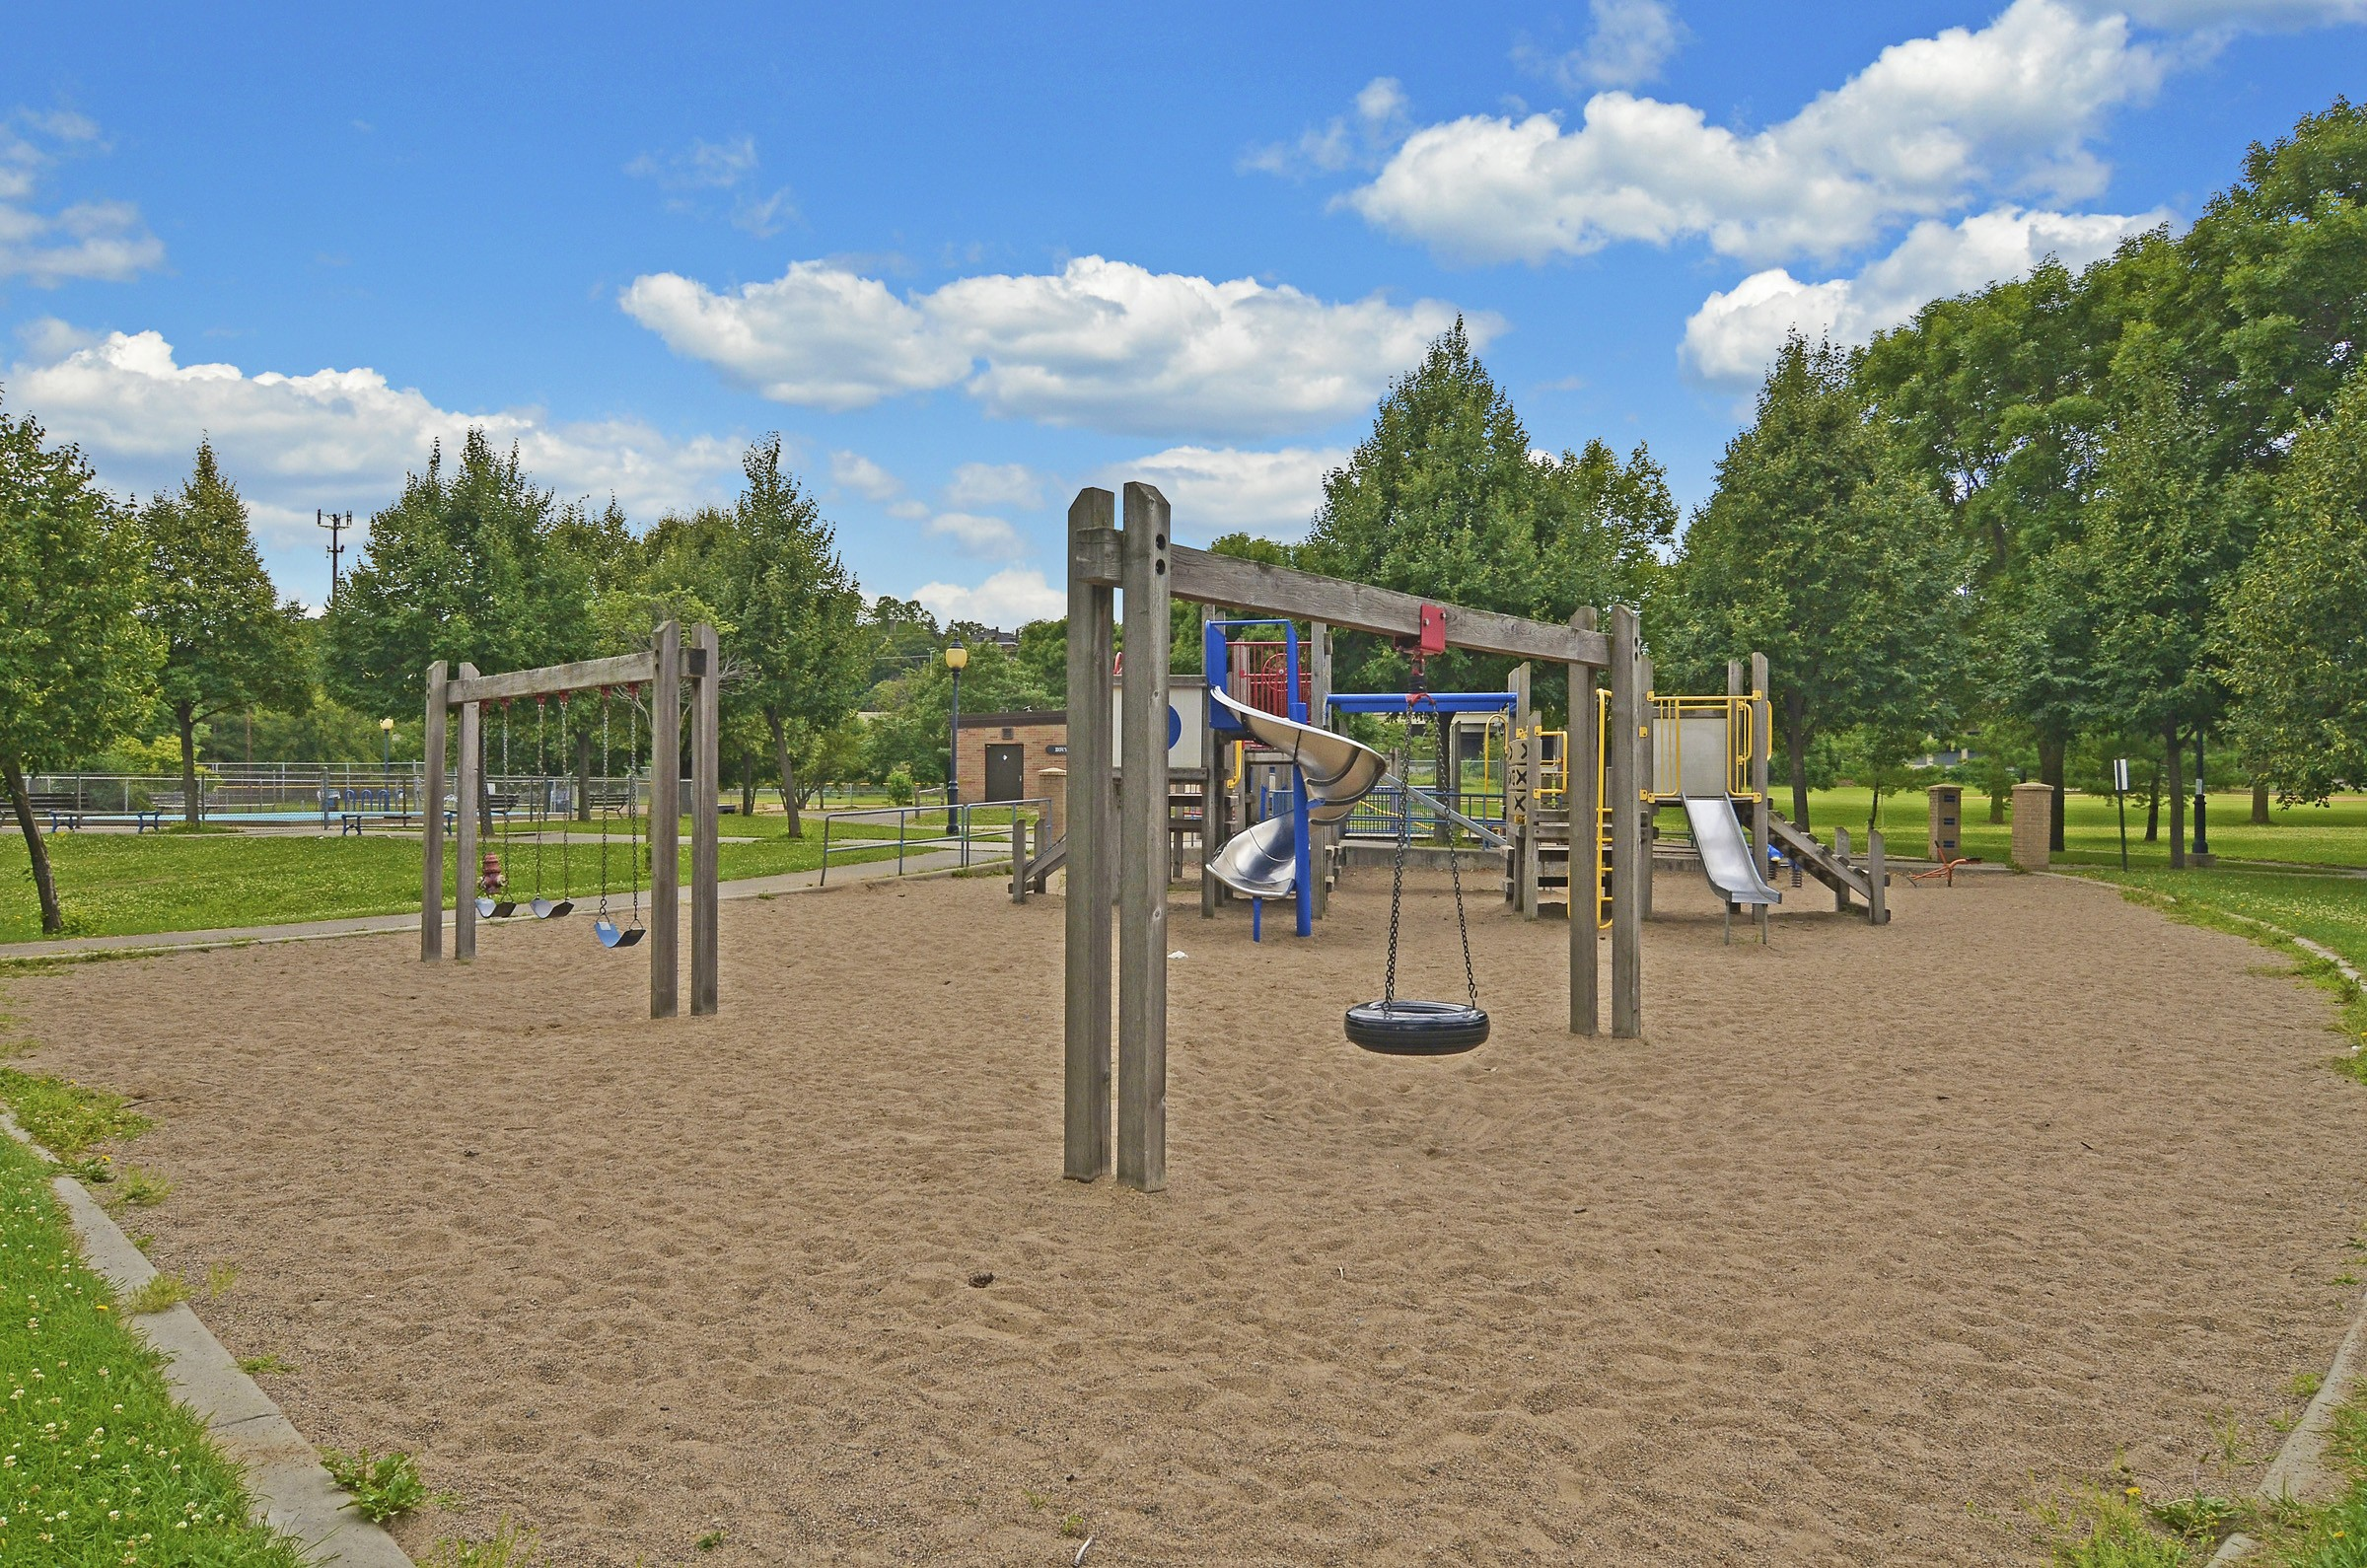 Playground in Bryn Mawr neighborhood in Minneapolis